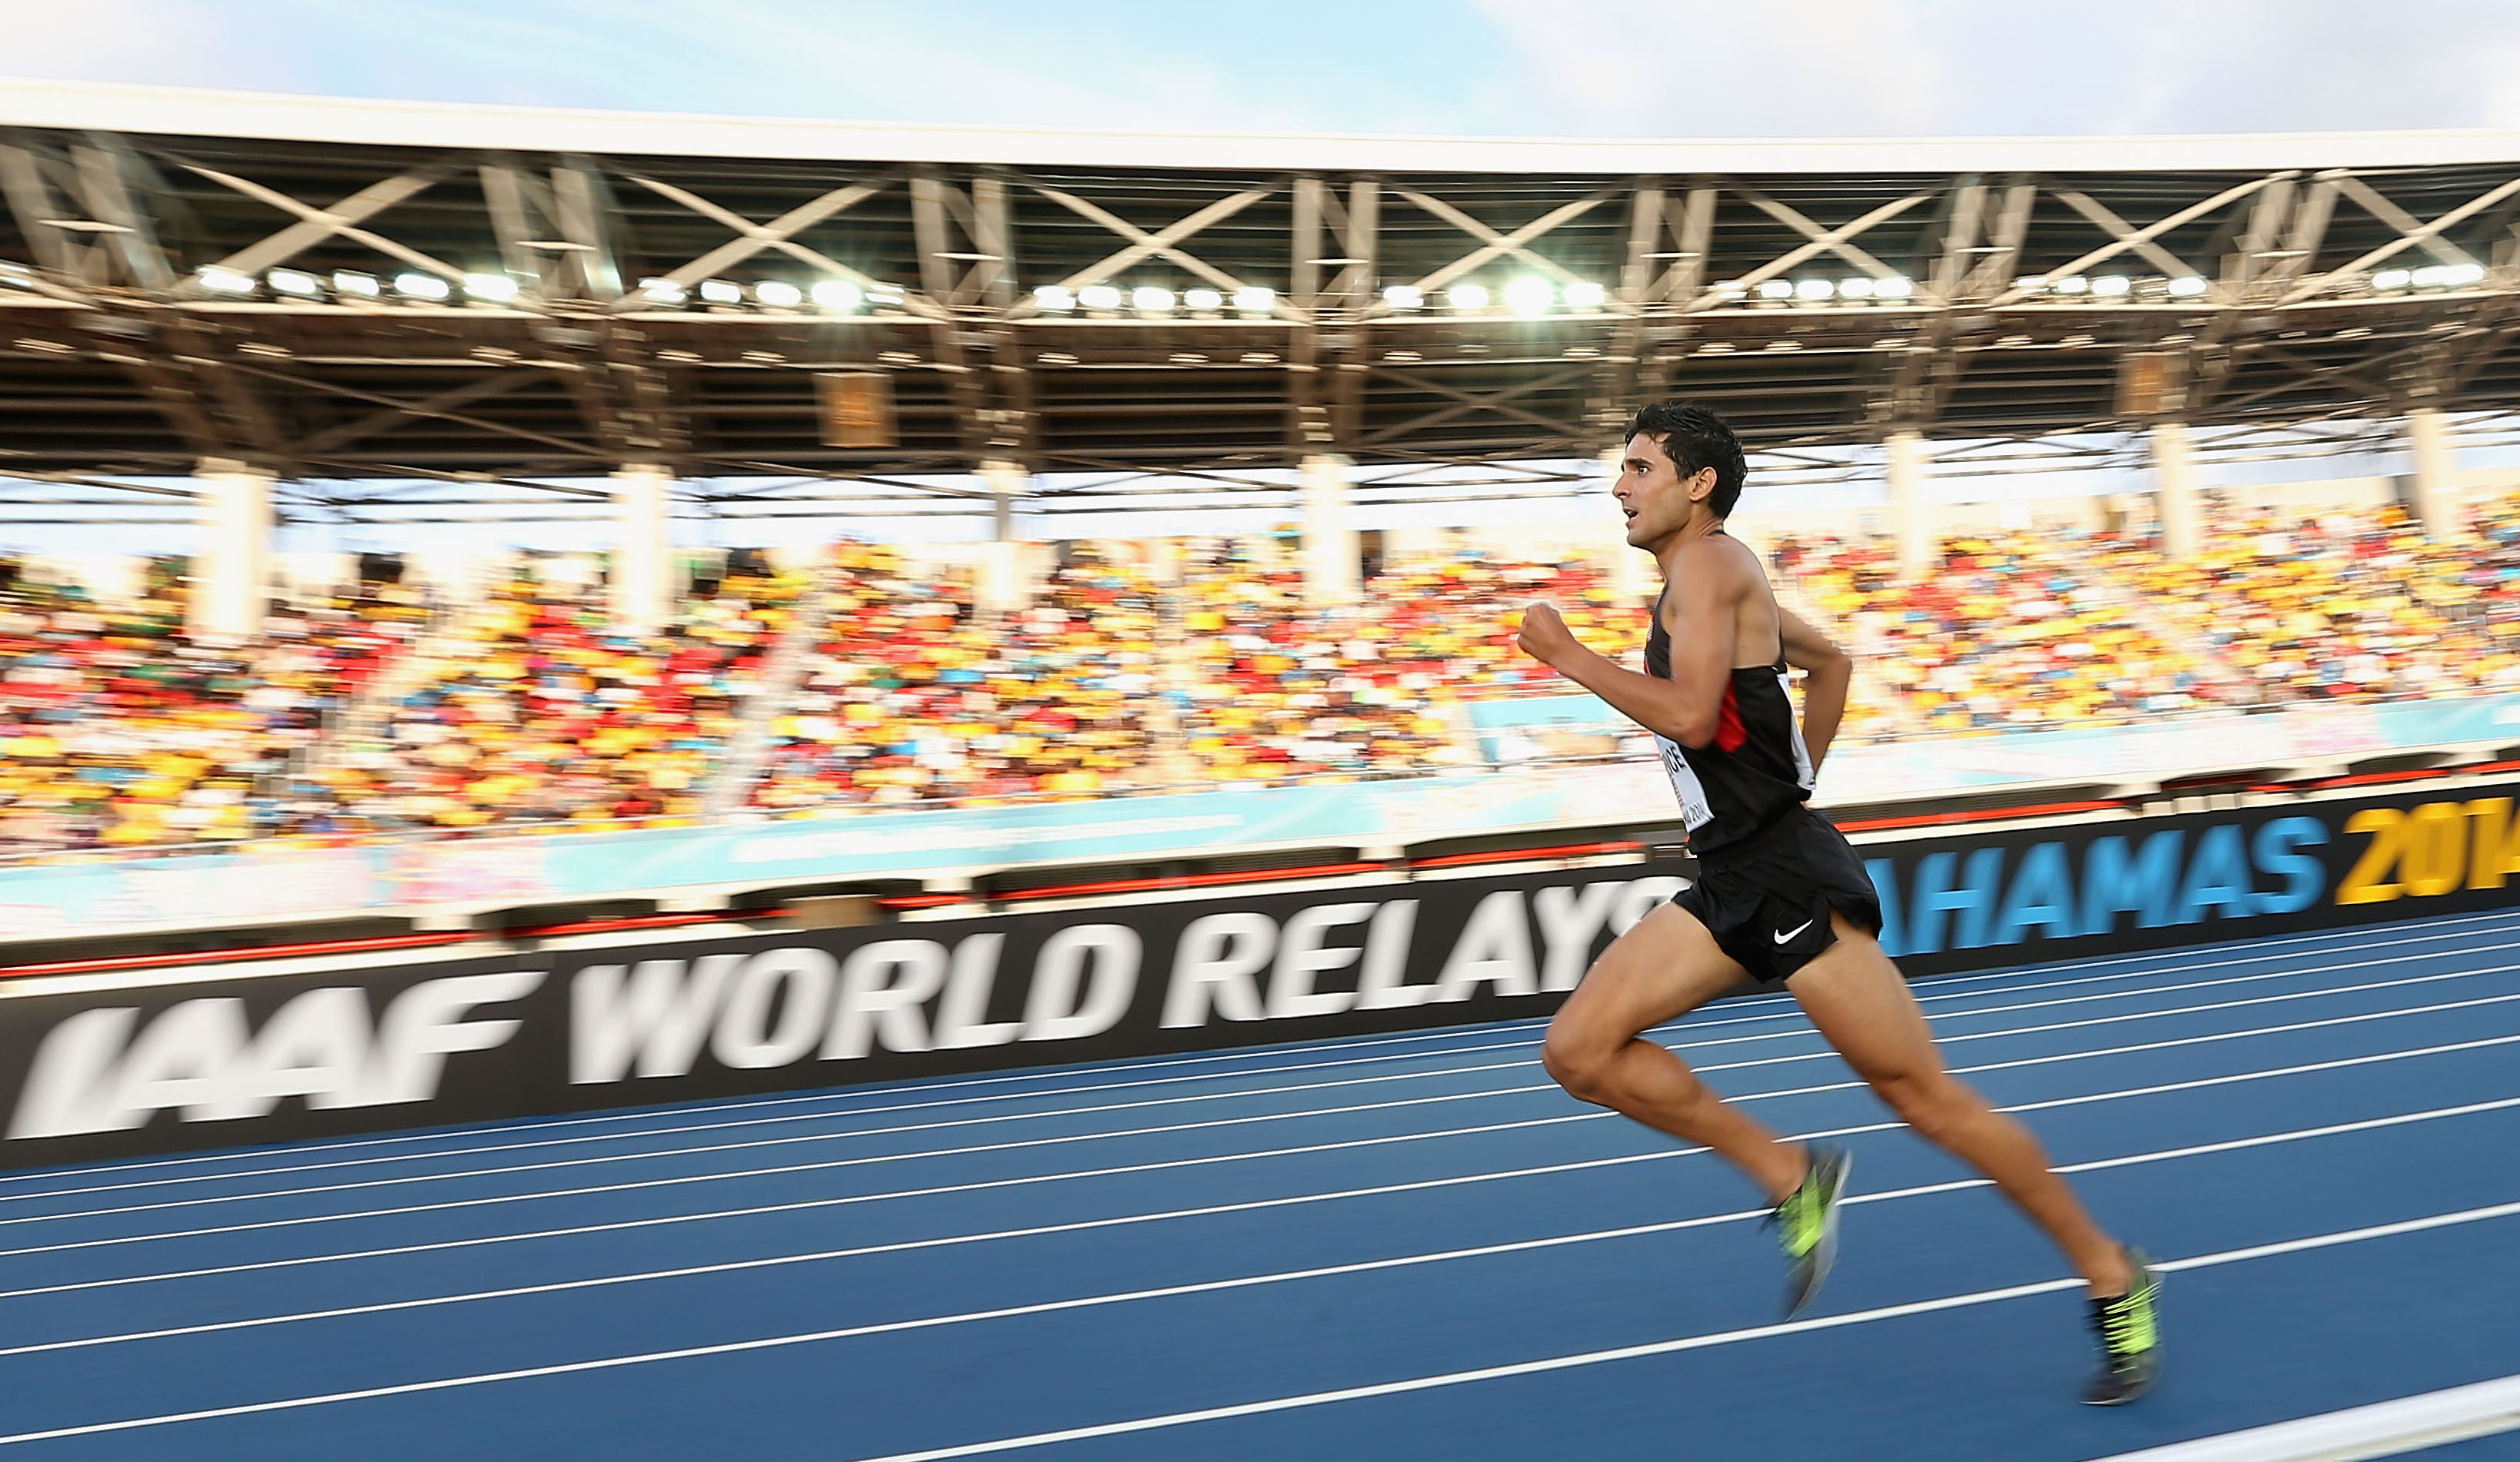 Beloved Runner and Peru's Mile Record-Holder David Torrence Was Found Dead In Arizona Pool